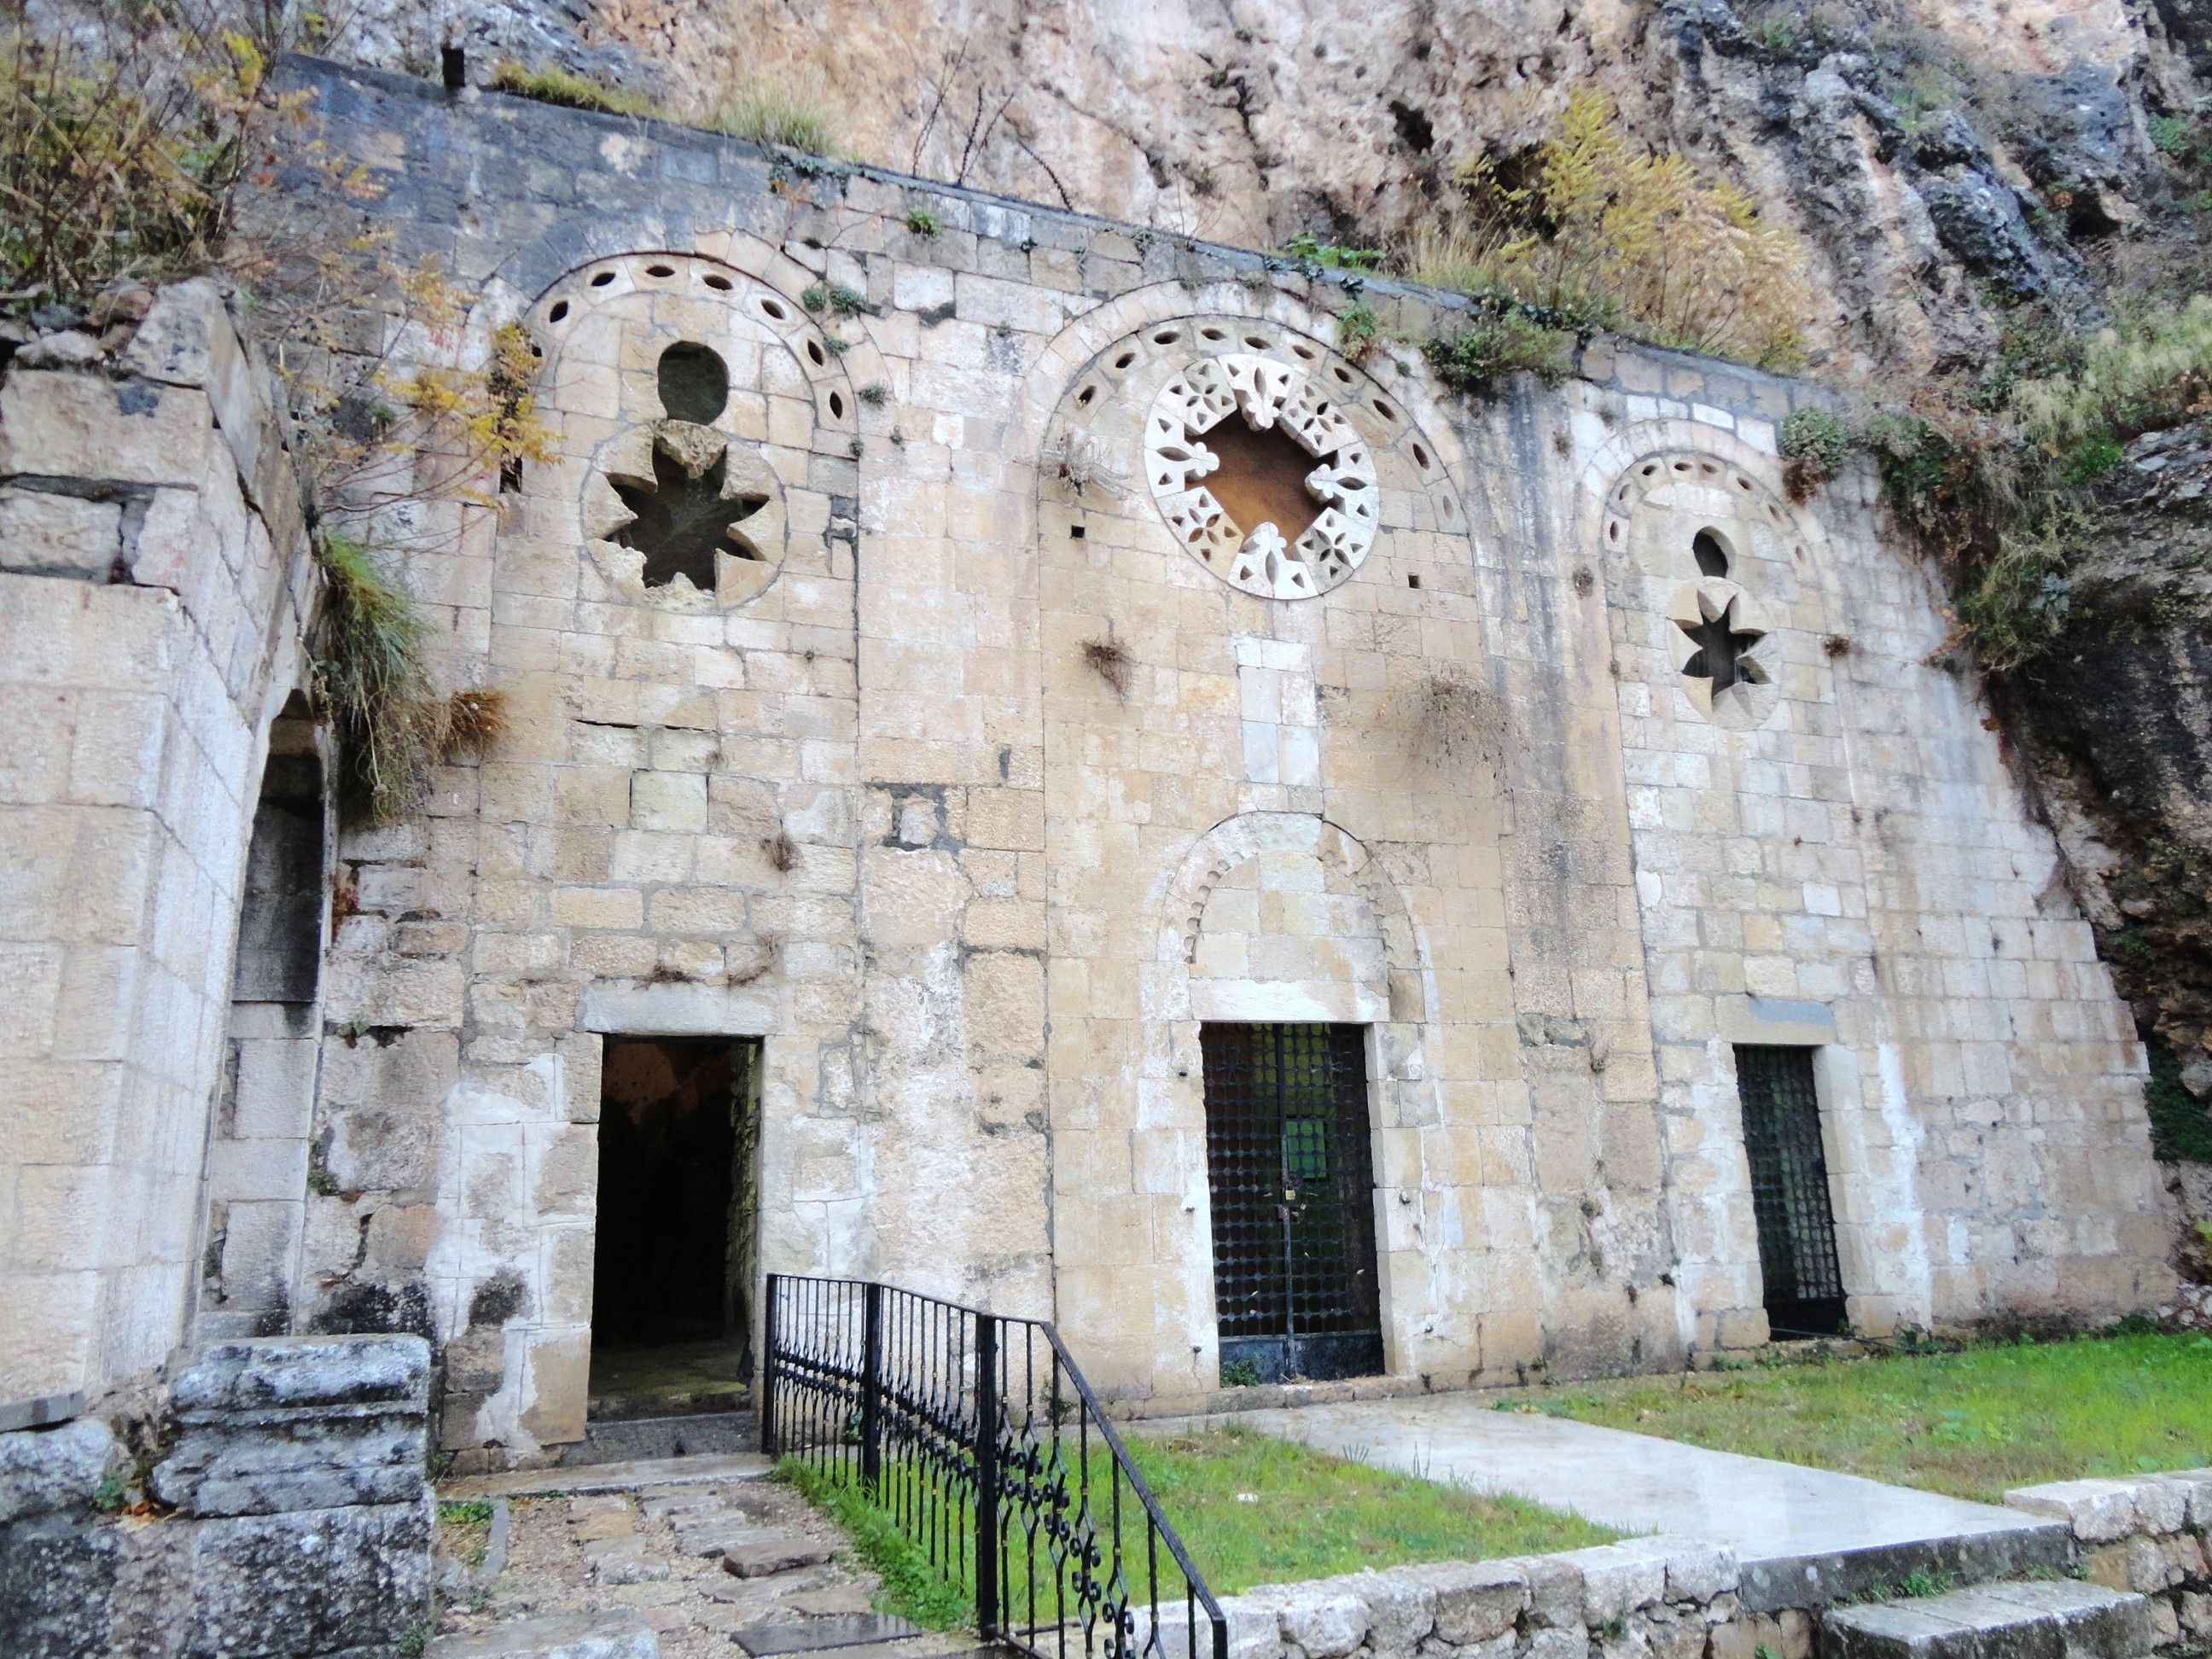 The facade of the Apostle Paul's church in Antioch